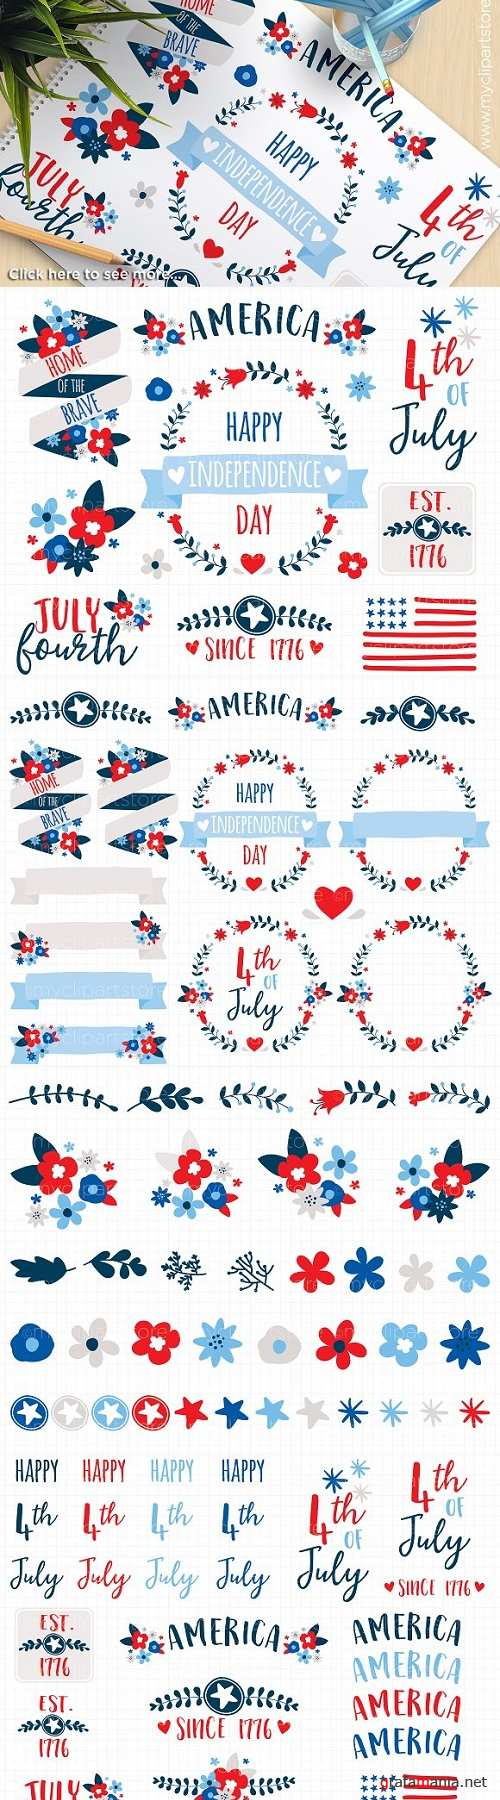 4th July Flowers & Wreaths Clipart - 879156